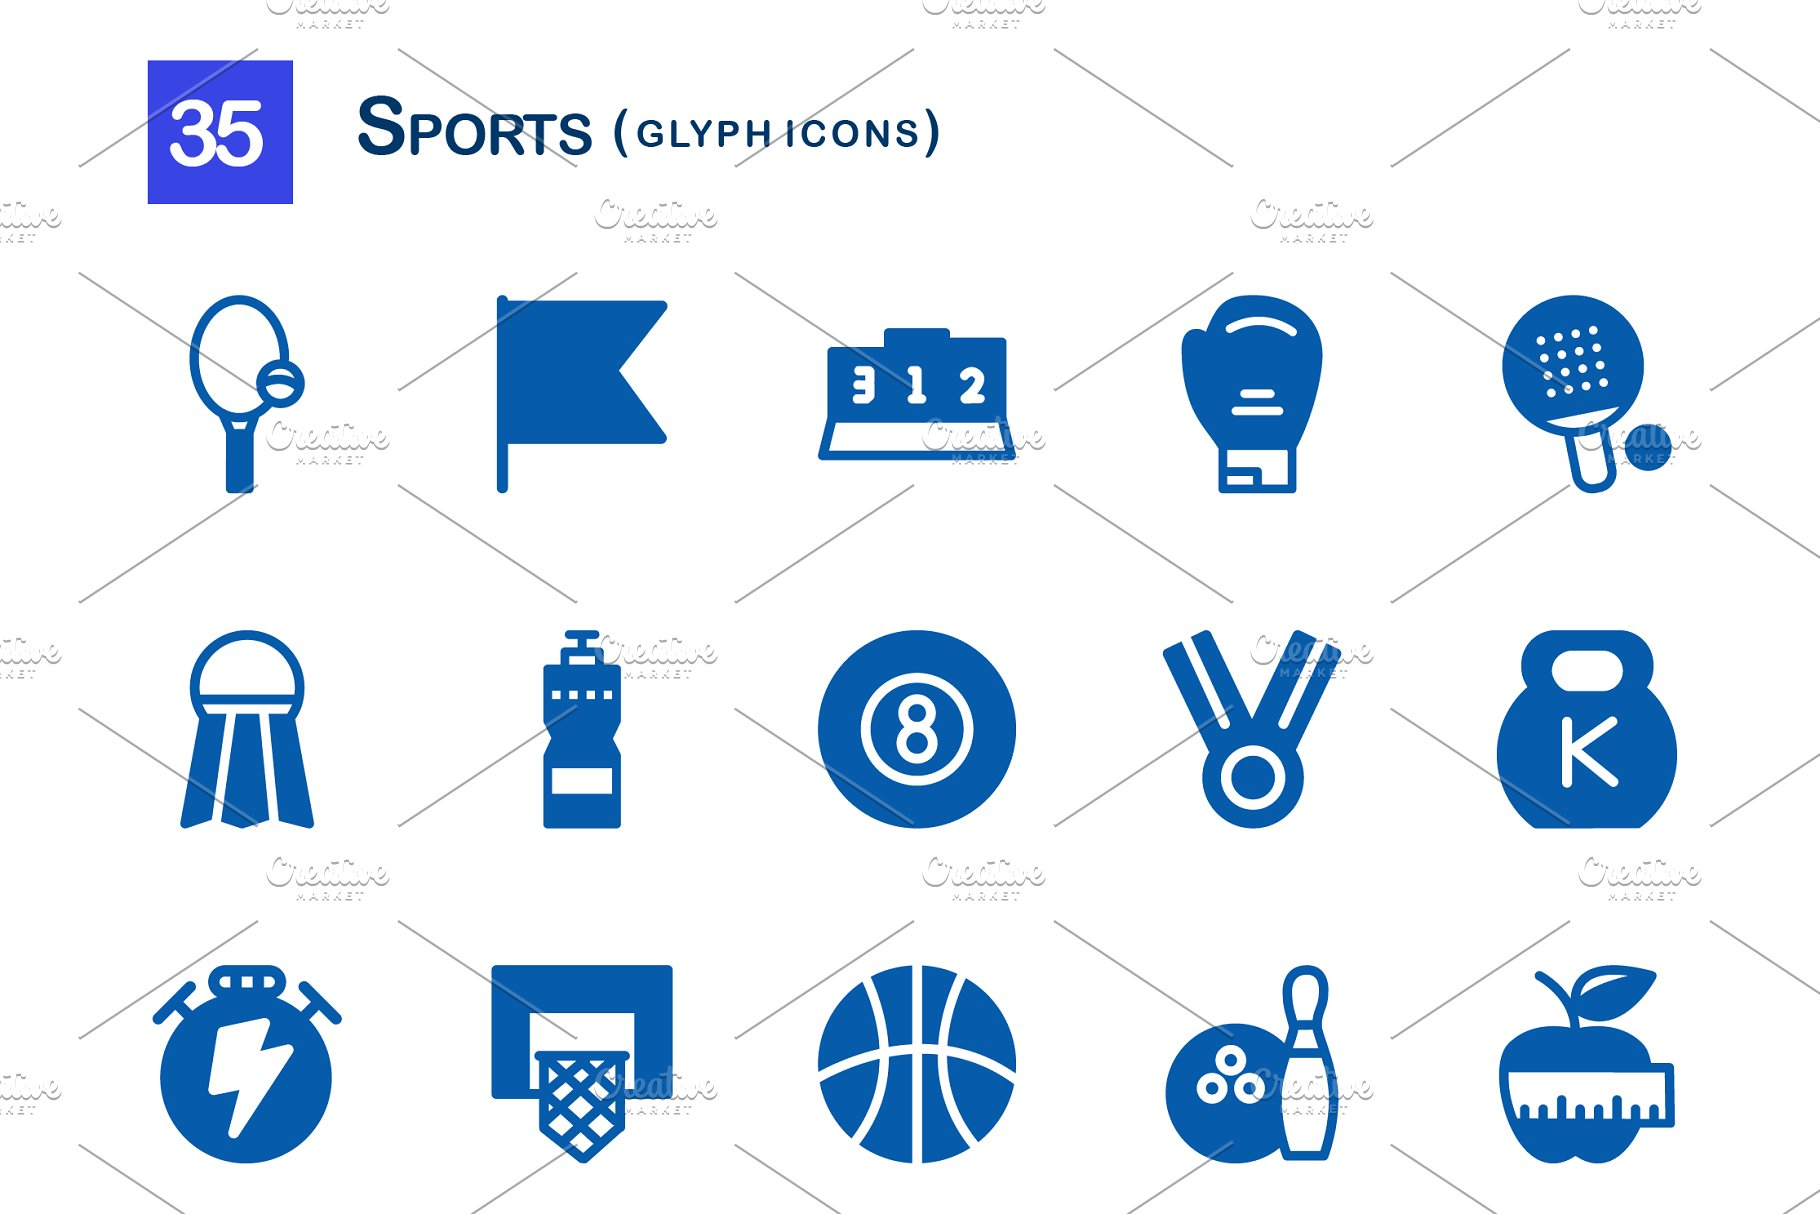 sports-glyph-icons-preview-slide-1-